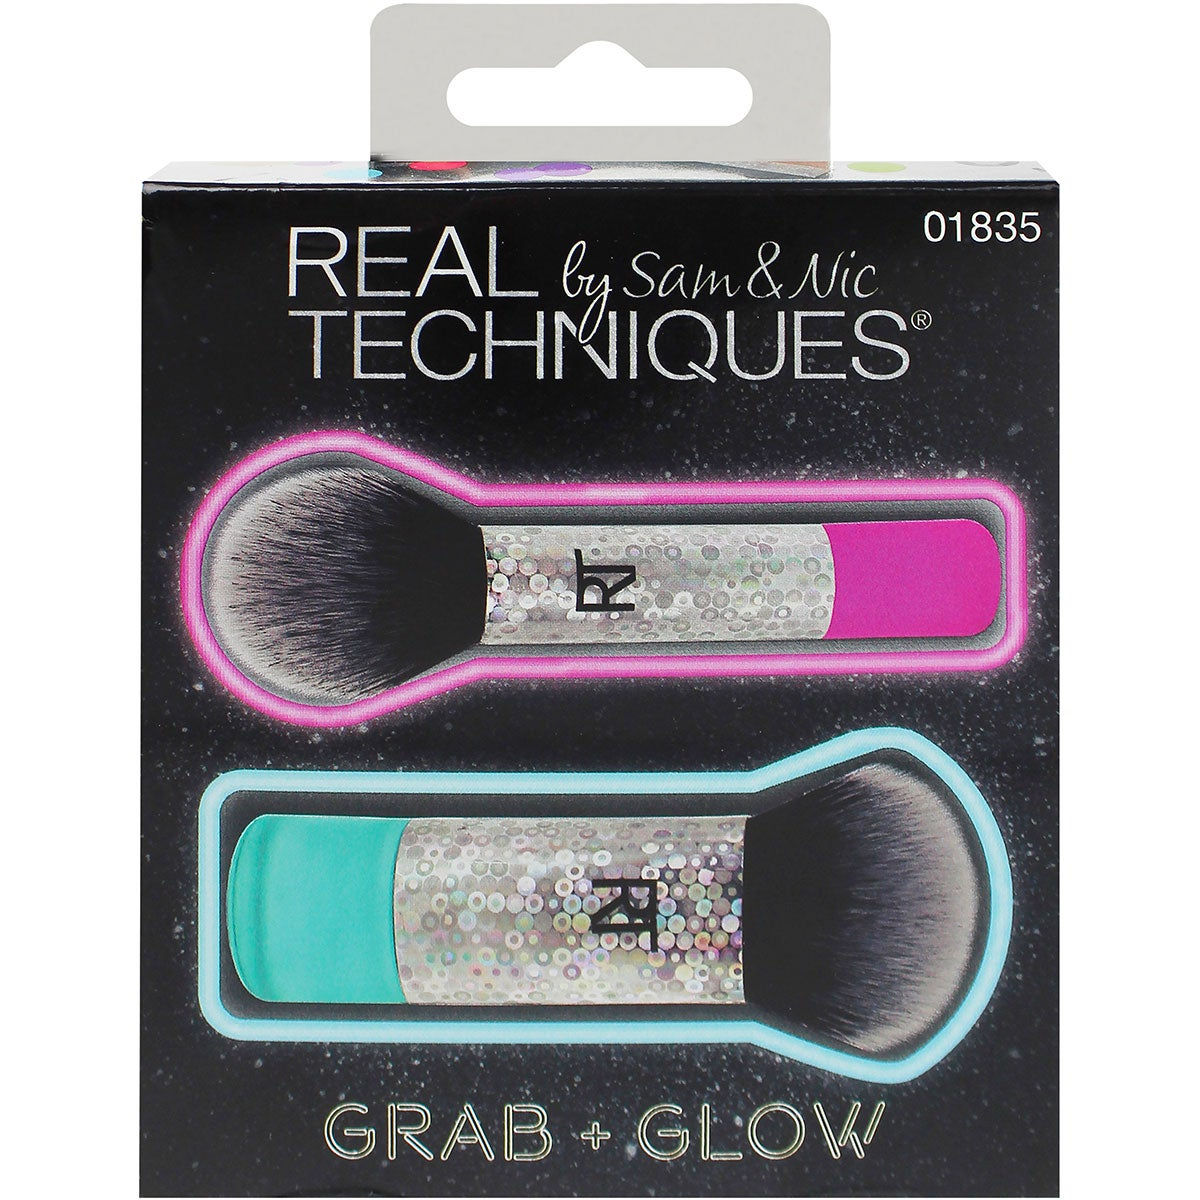 Real Techniques Grab & Glow